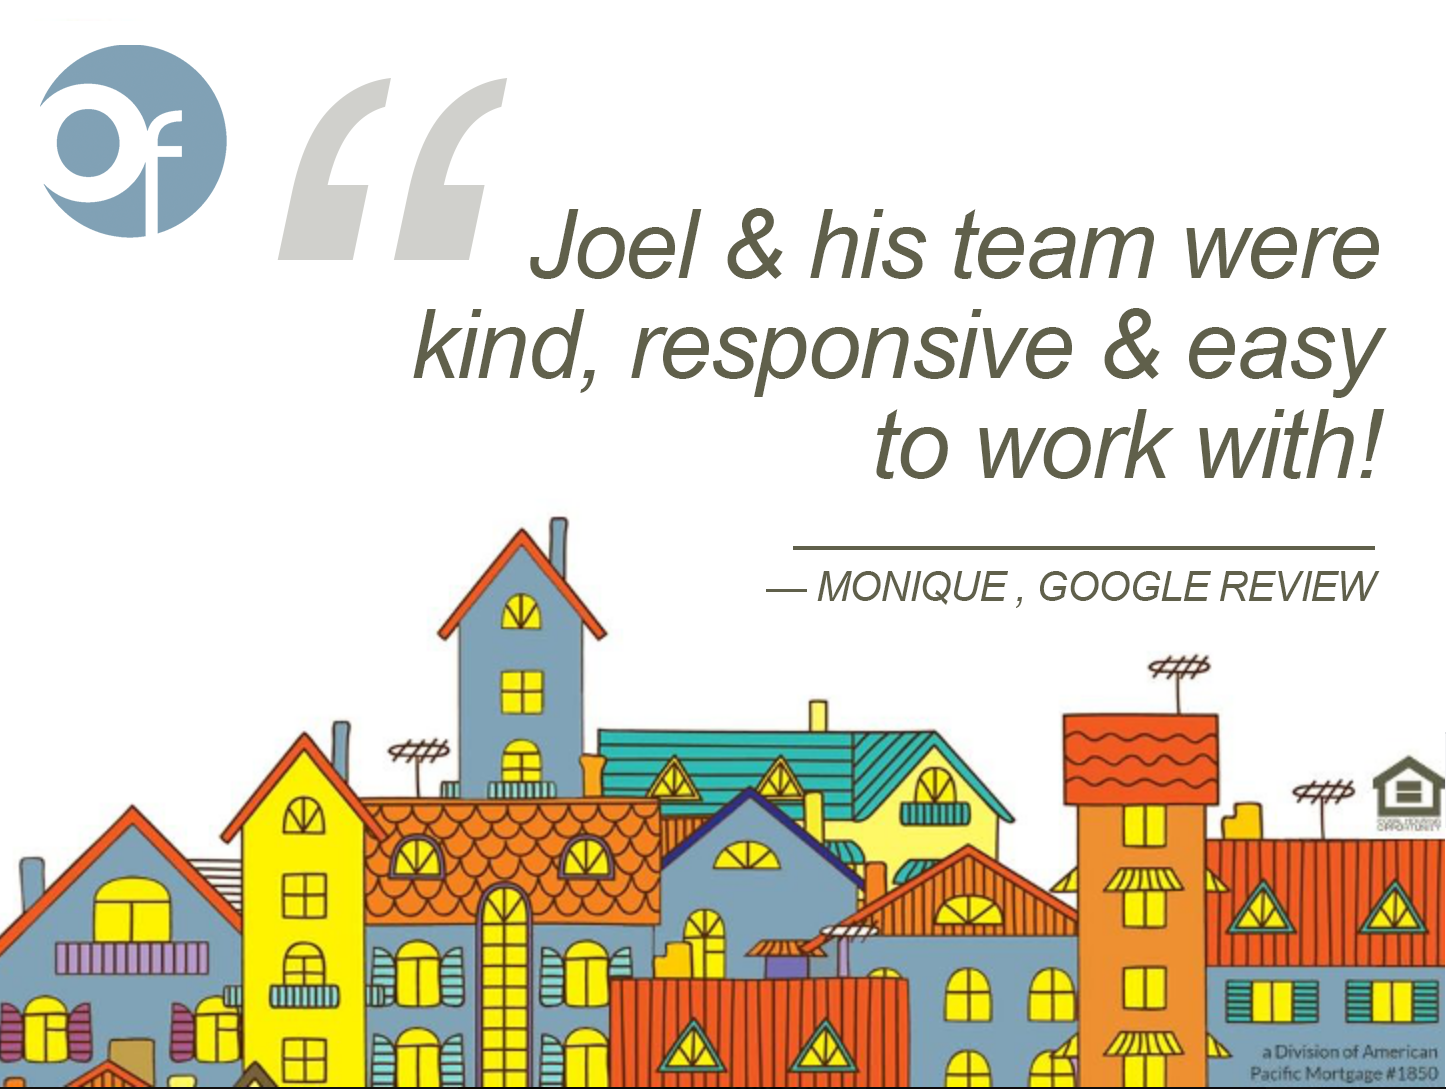 Joel & his team were kind, responsive & easy to work with!